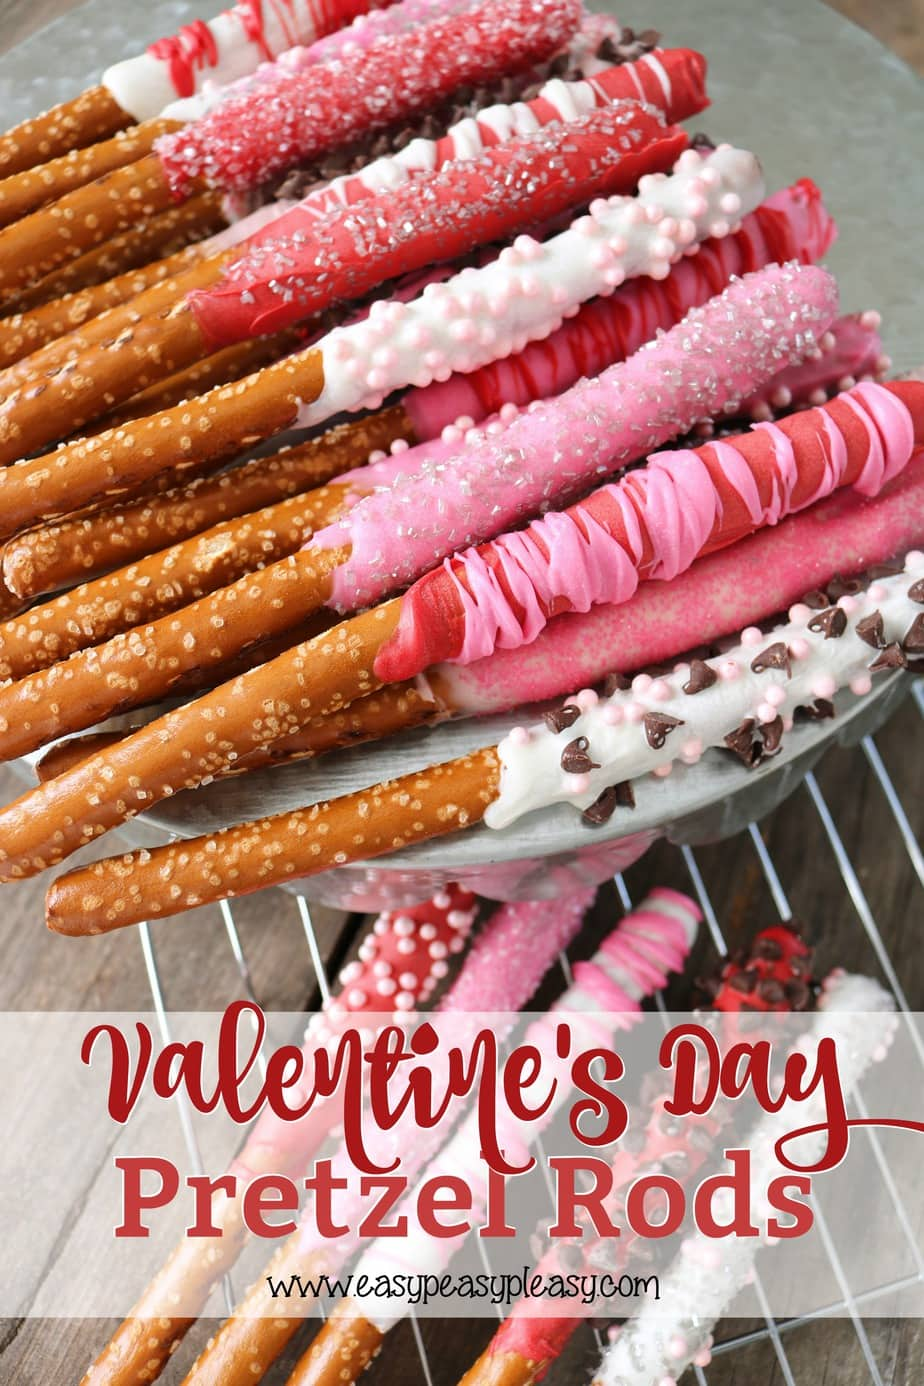 Make Valentine Day Special by making chocolate covered pretzels. It's an easy homemade sweet treat perfect Valentine's Day.